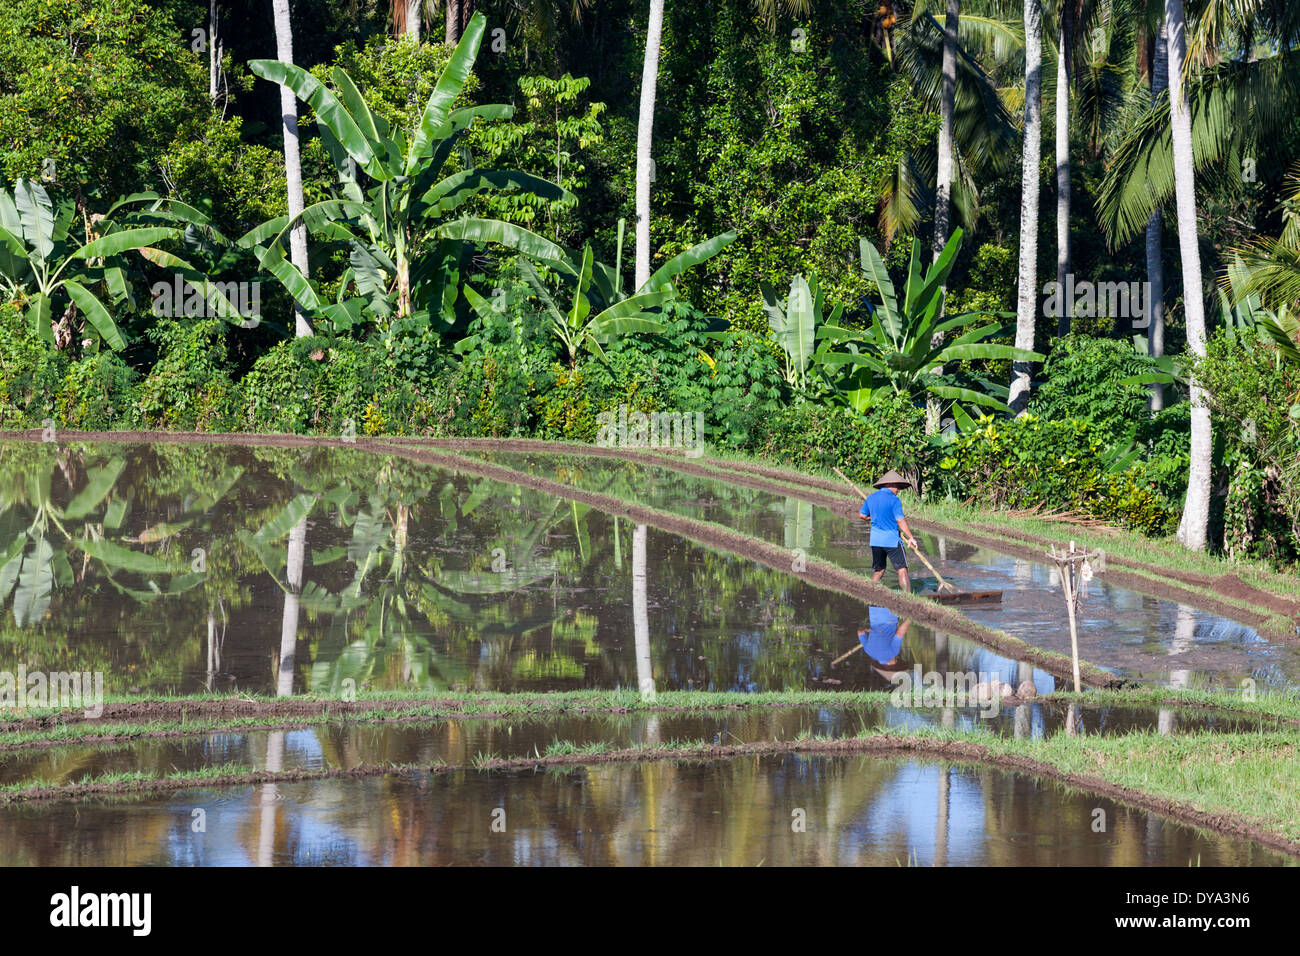 Man working on rice field in region of Antosari and Belimbing (probably closer to Antosari), Bali, Indonesia - Stock Image